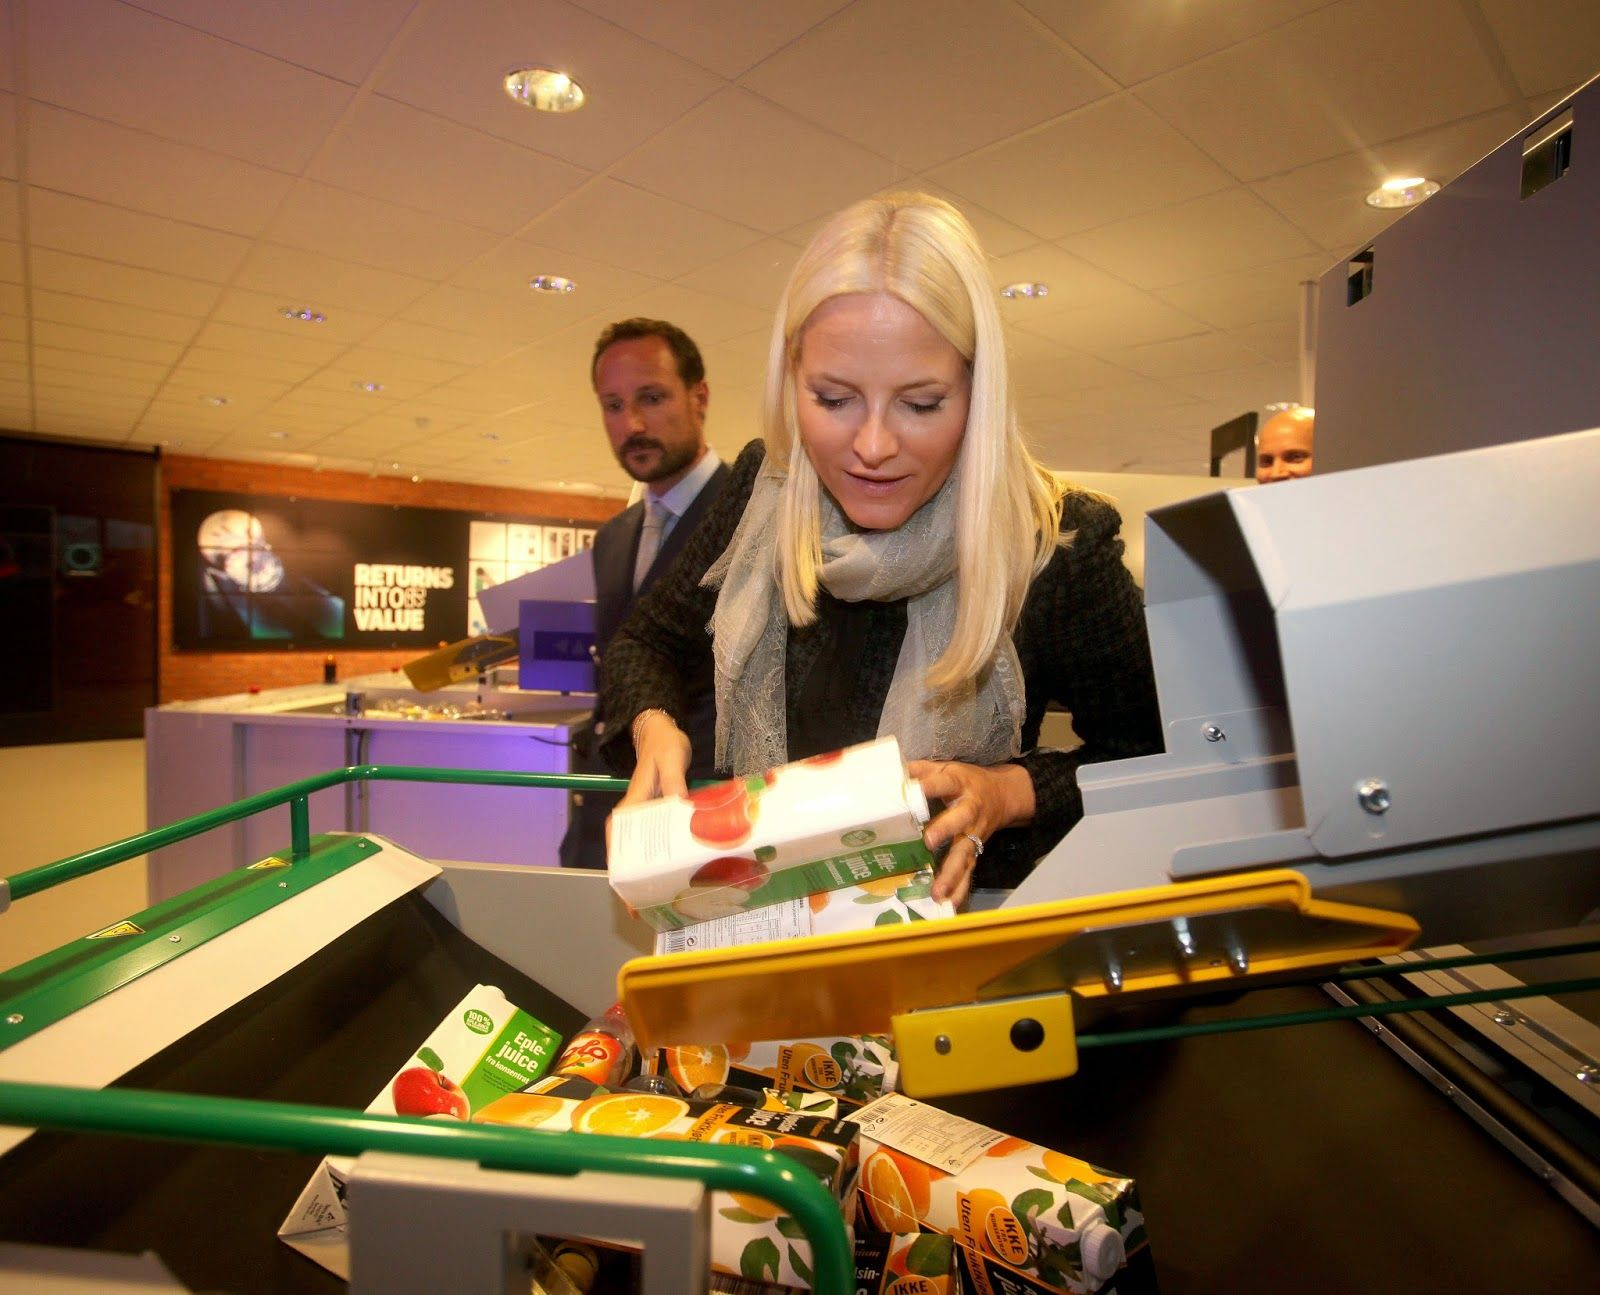 Queens & Princesses - Prince Haakon and Princess Mette Marit visited Tomra is a recycling plant